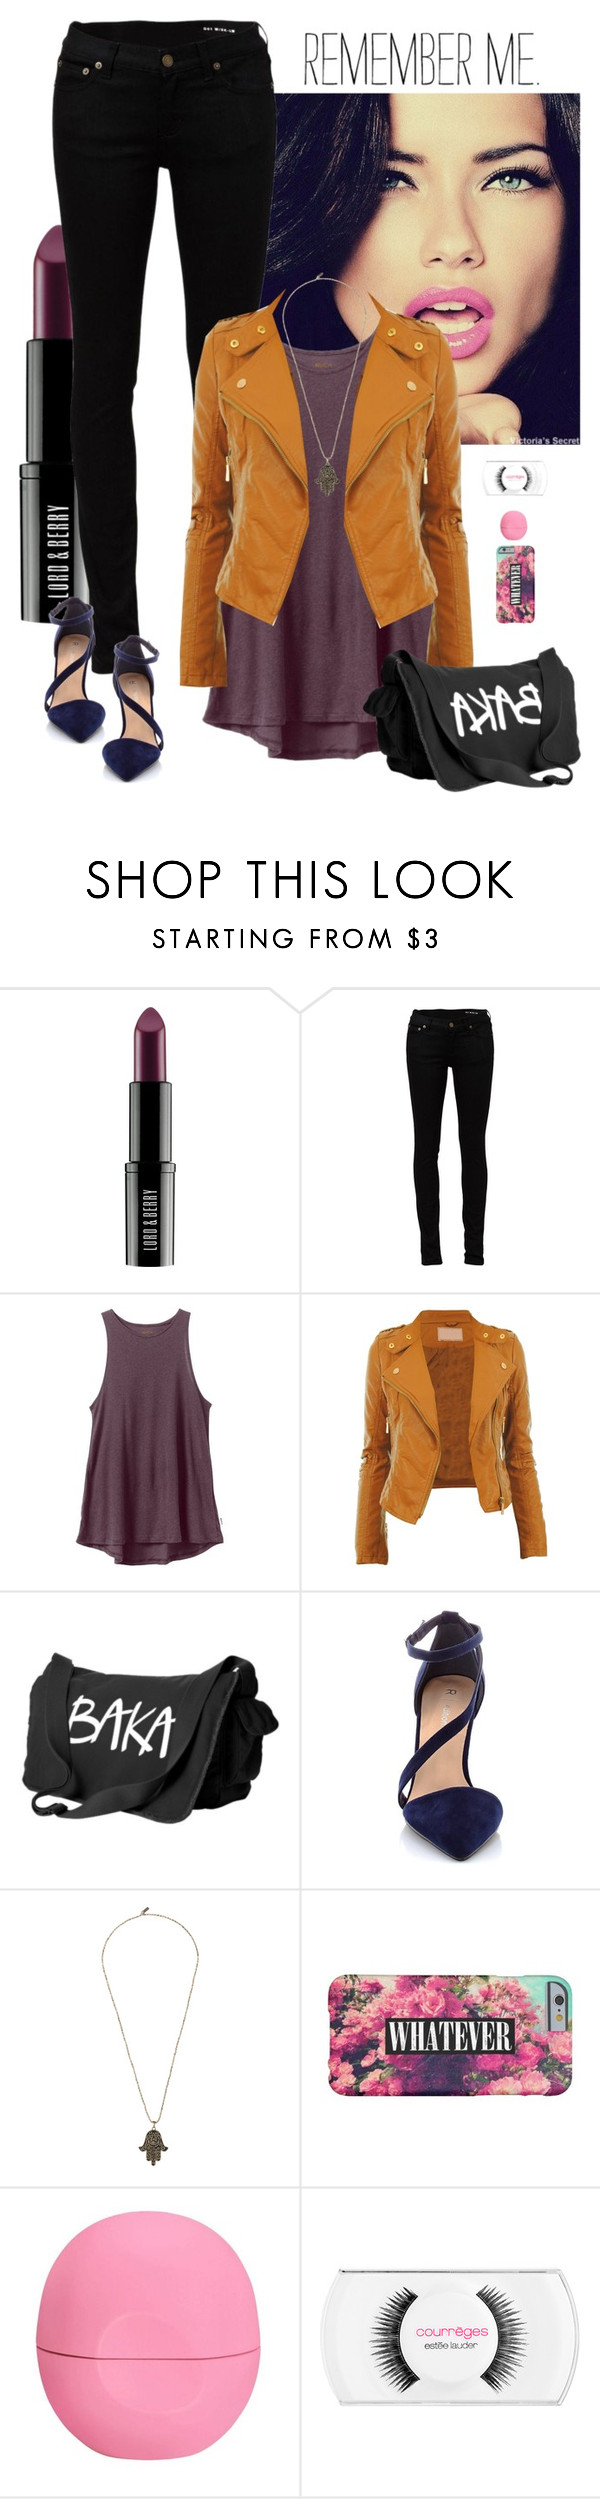 """Remember Me?"" by candybrain ❤ liked on Polyvore featuring Lord & Berry, Yves Saint Laurent, RVCA, Vanessa Mooney, Eos and Estée Lauder"